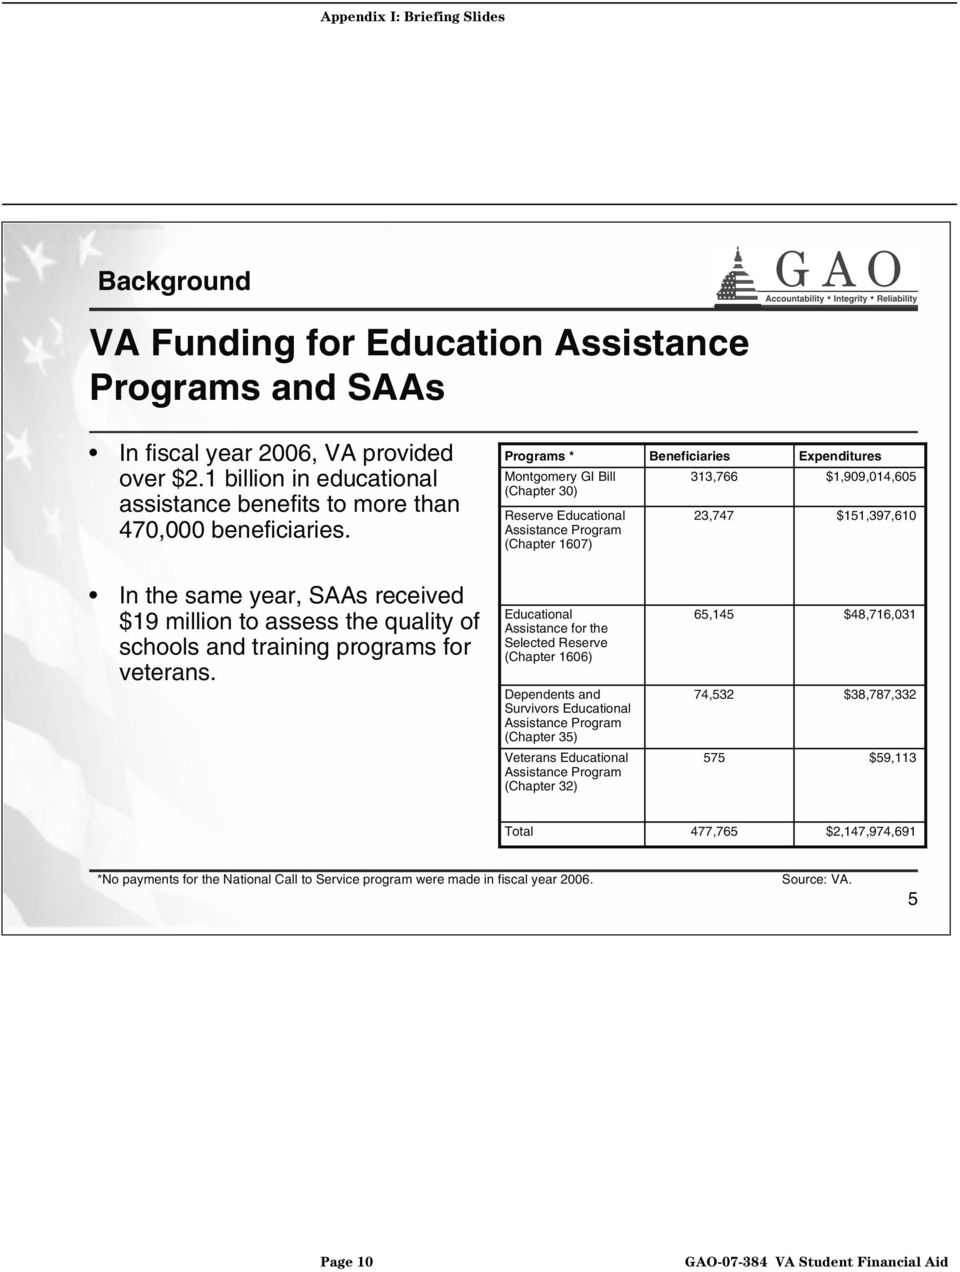 $19 million to assess the quality of schools and training programs for veterans.